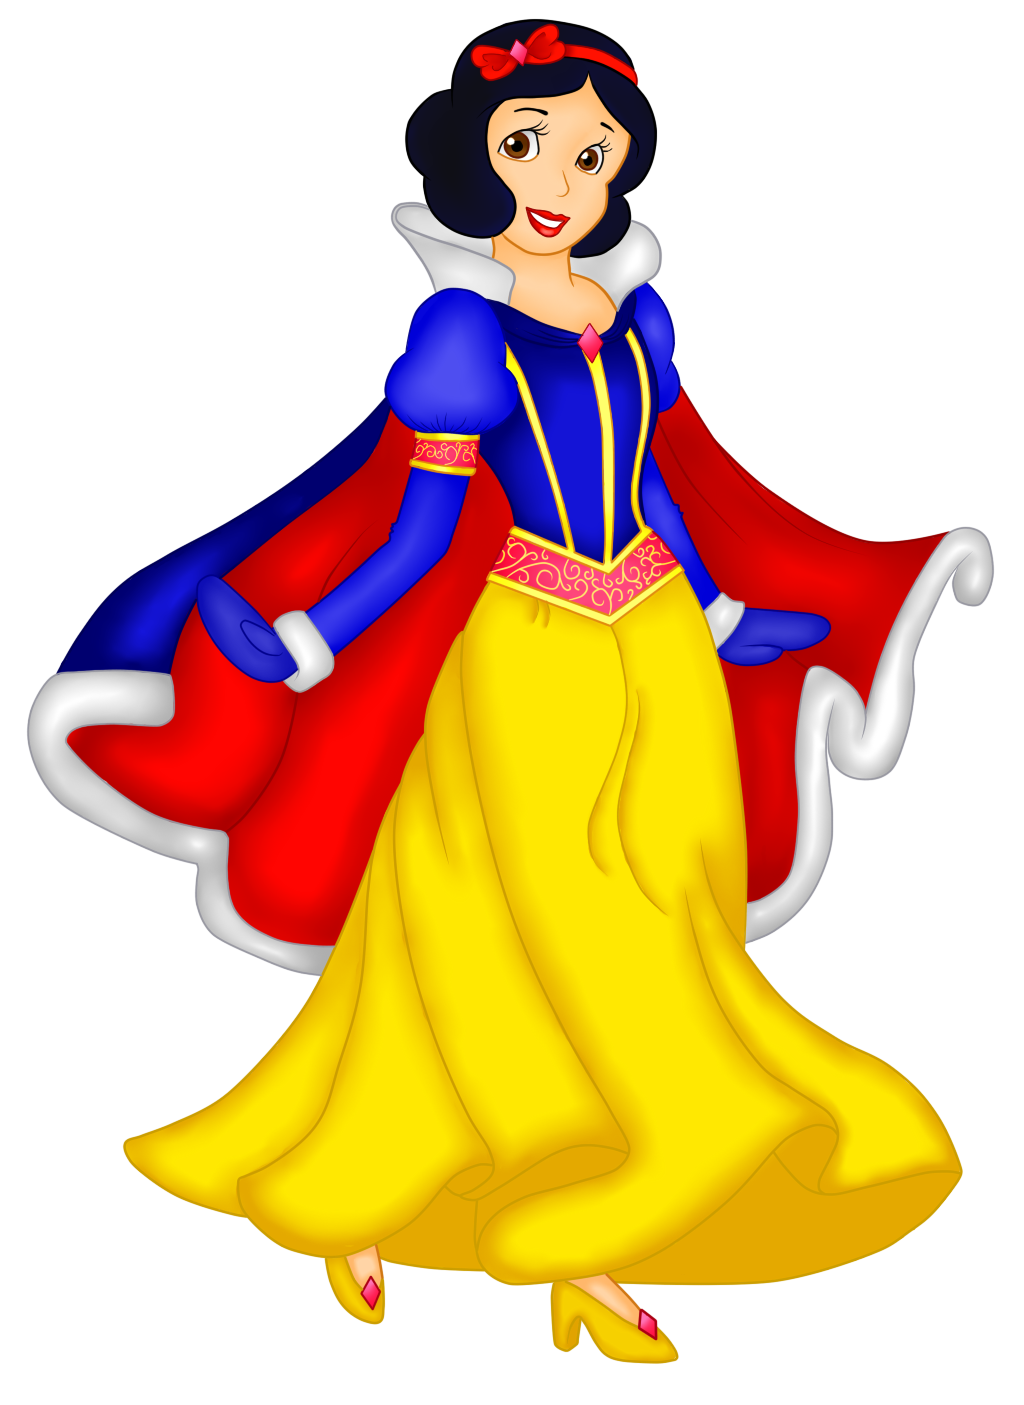 Snow White Png Transparent Images  314